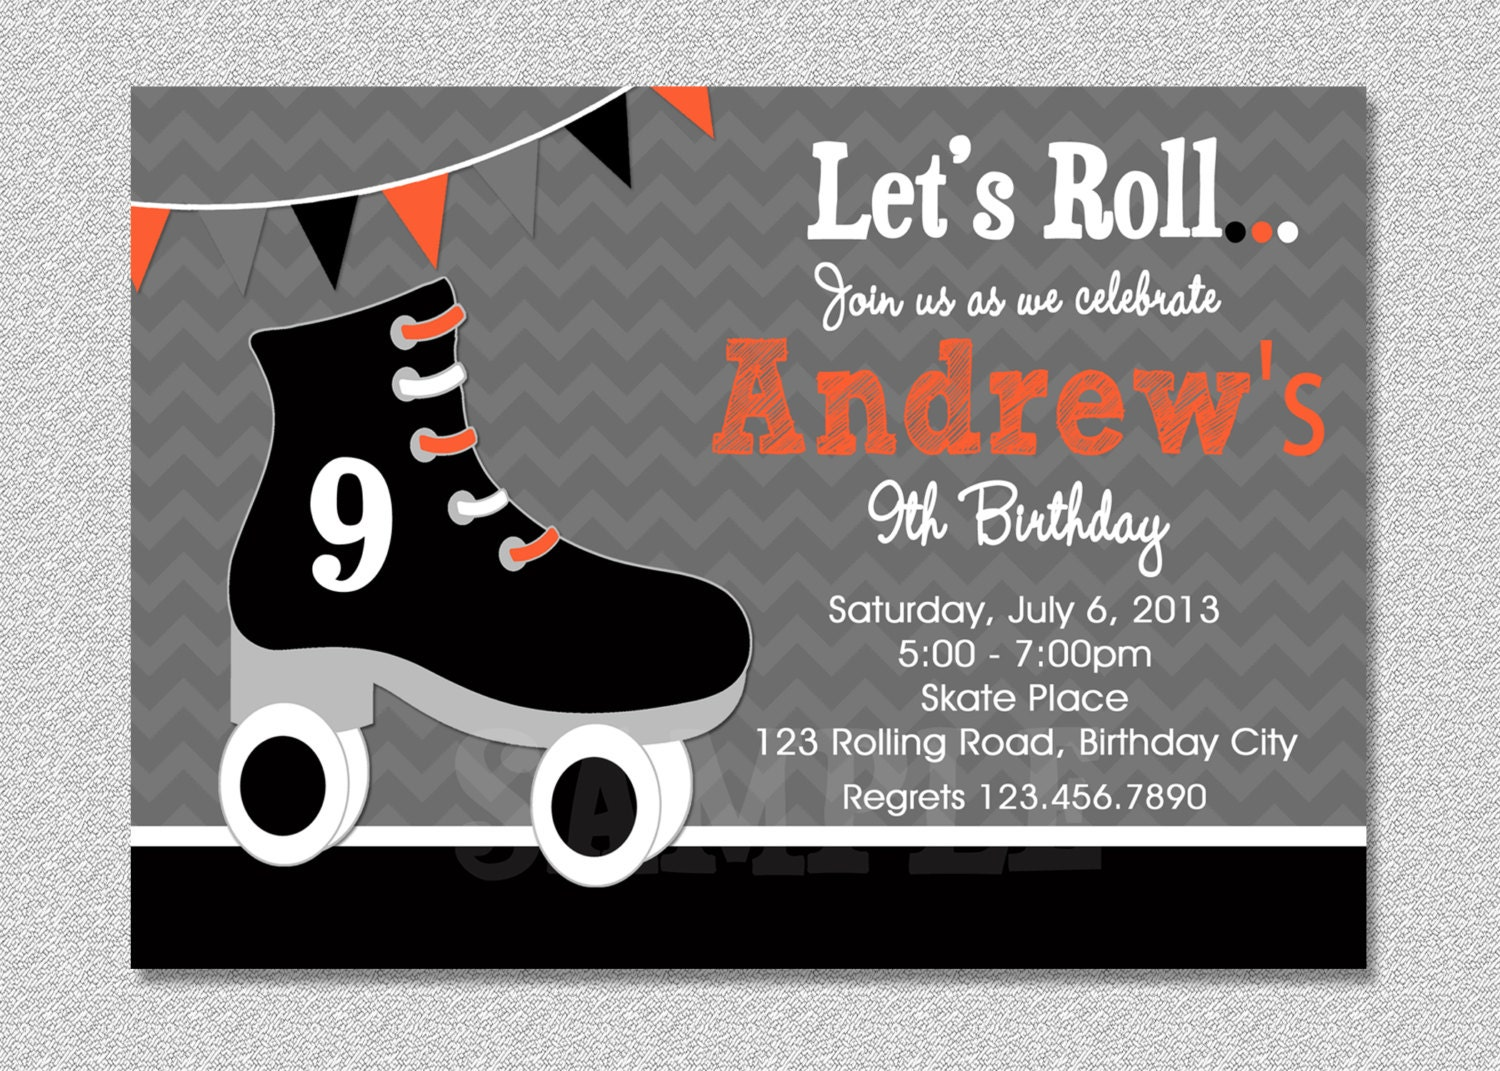 photograph relating to Free Printable Roller Skate Party Invitations known as Boys Skating Birthday Invitation, Boys Roller Skating Birthday Bash, Skating Birthday Invitation, Invitation Printable